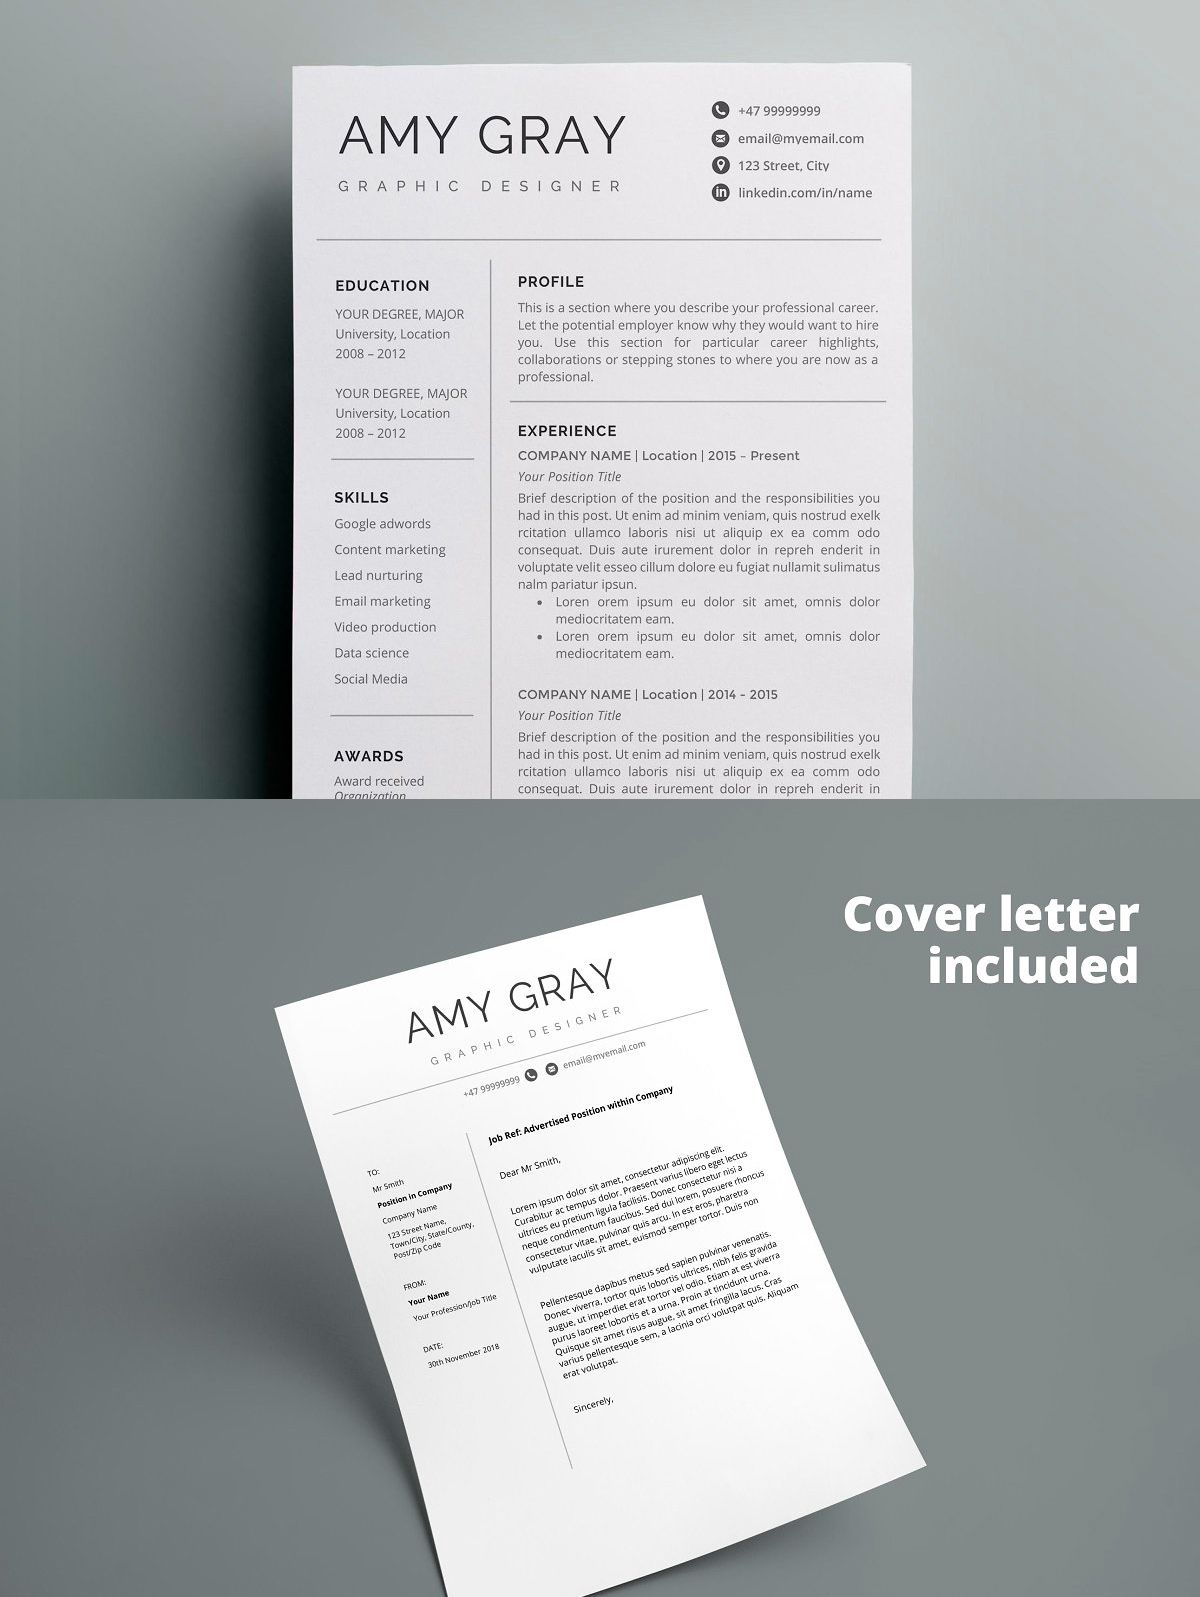 components of a strong resume